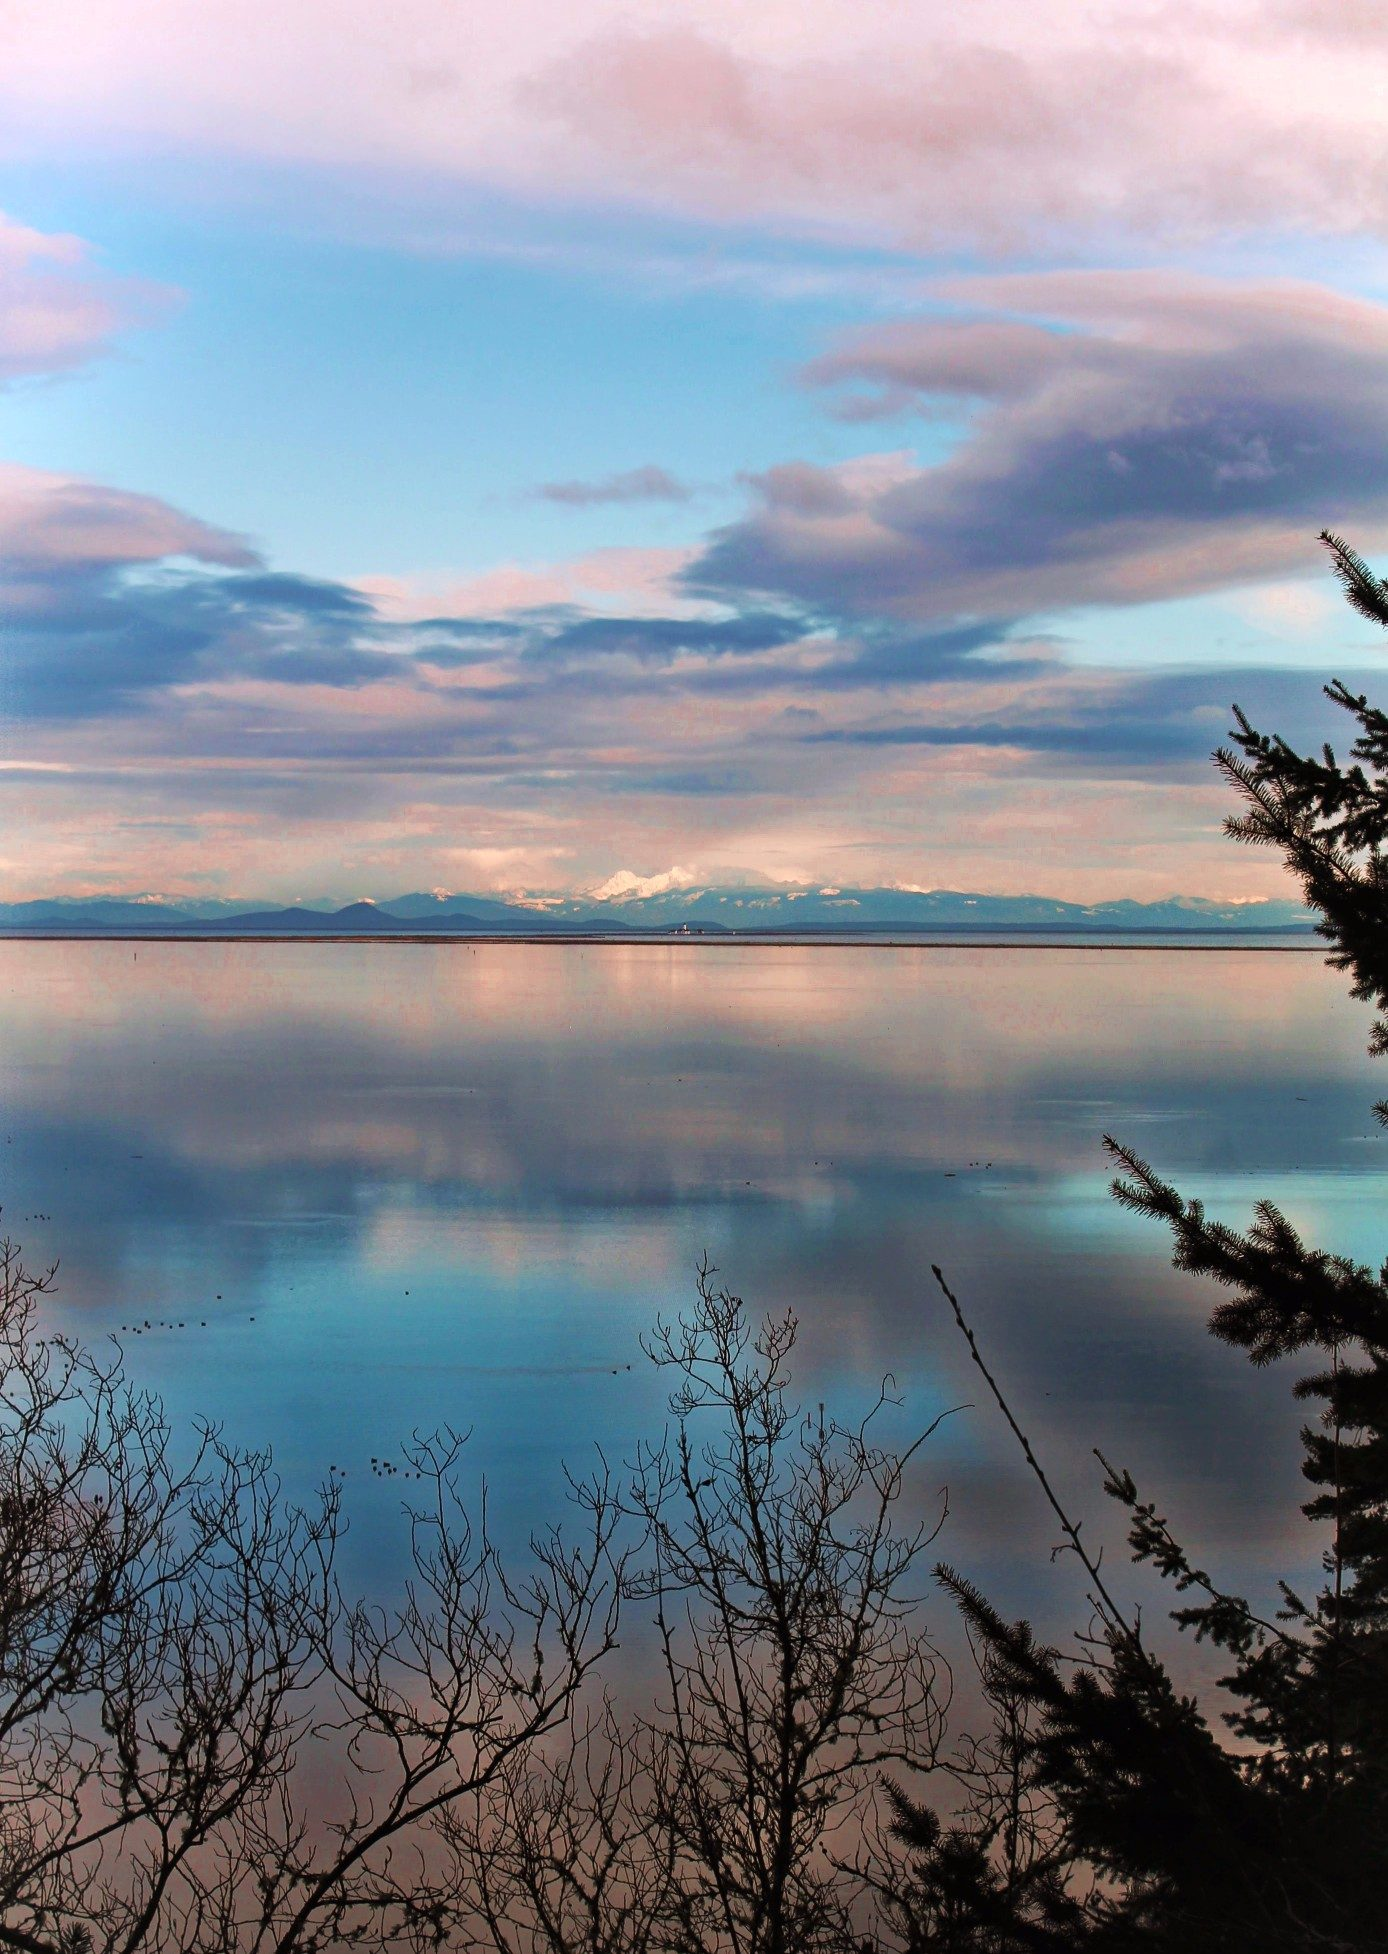 Dungeness National Wildlife Refuge: PNW nature at its finest